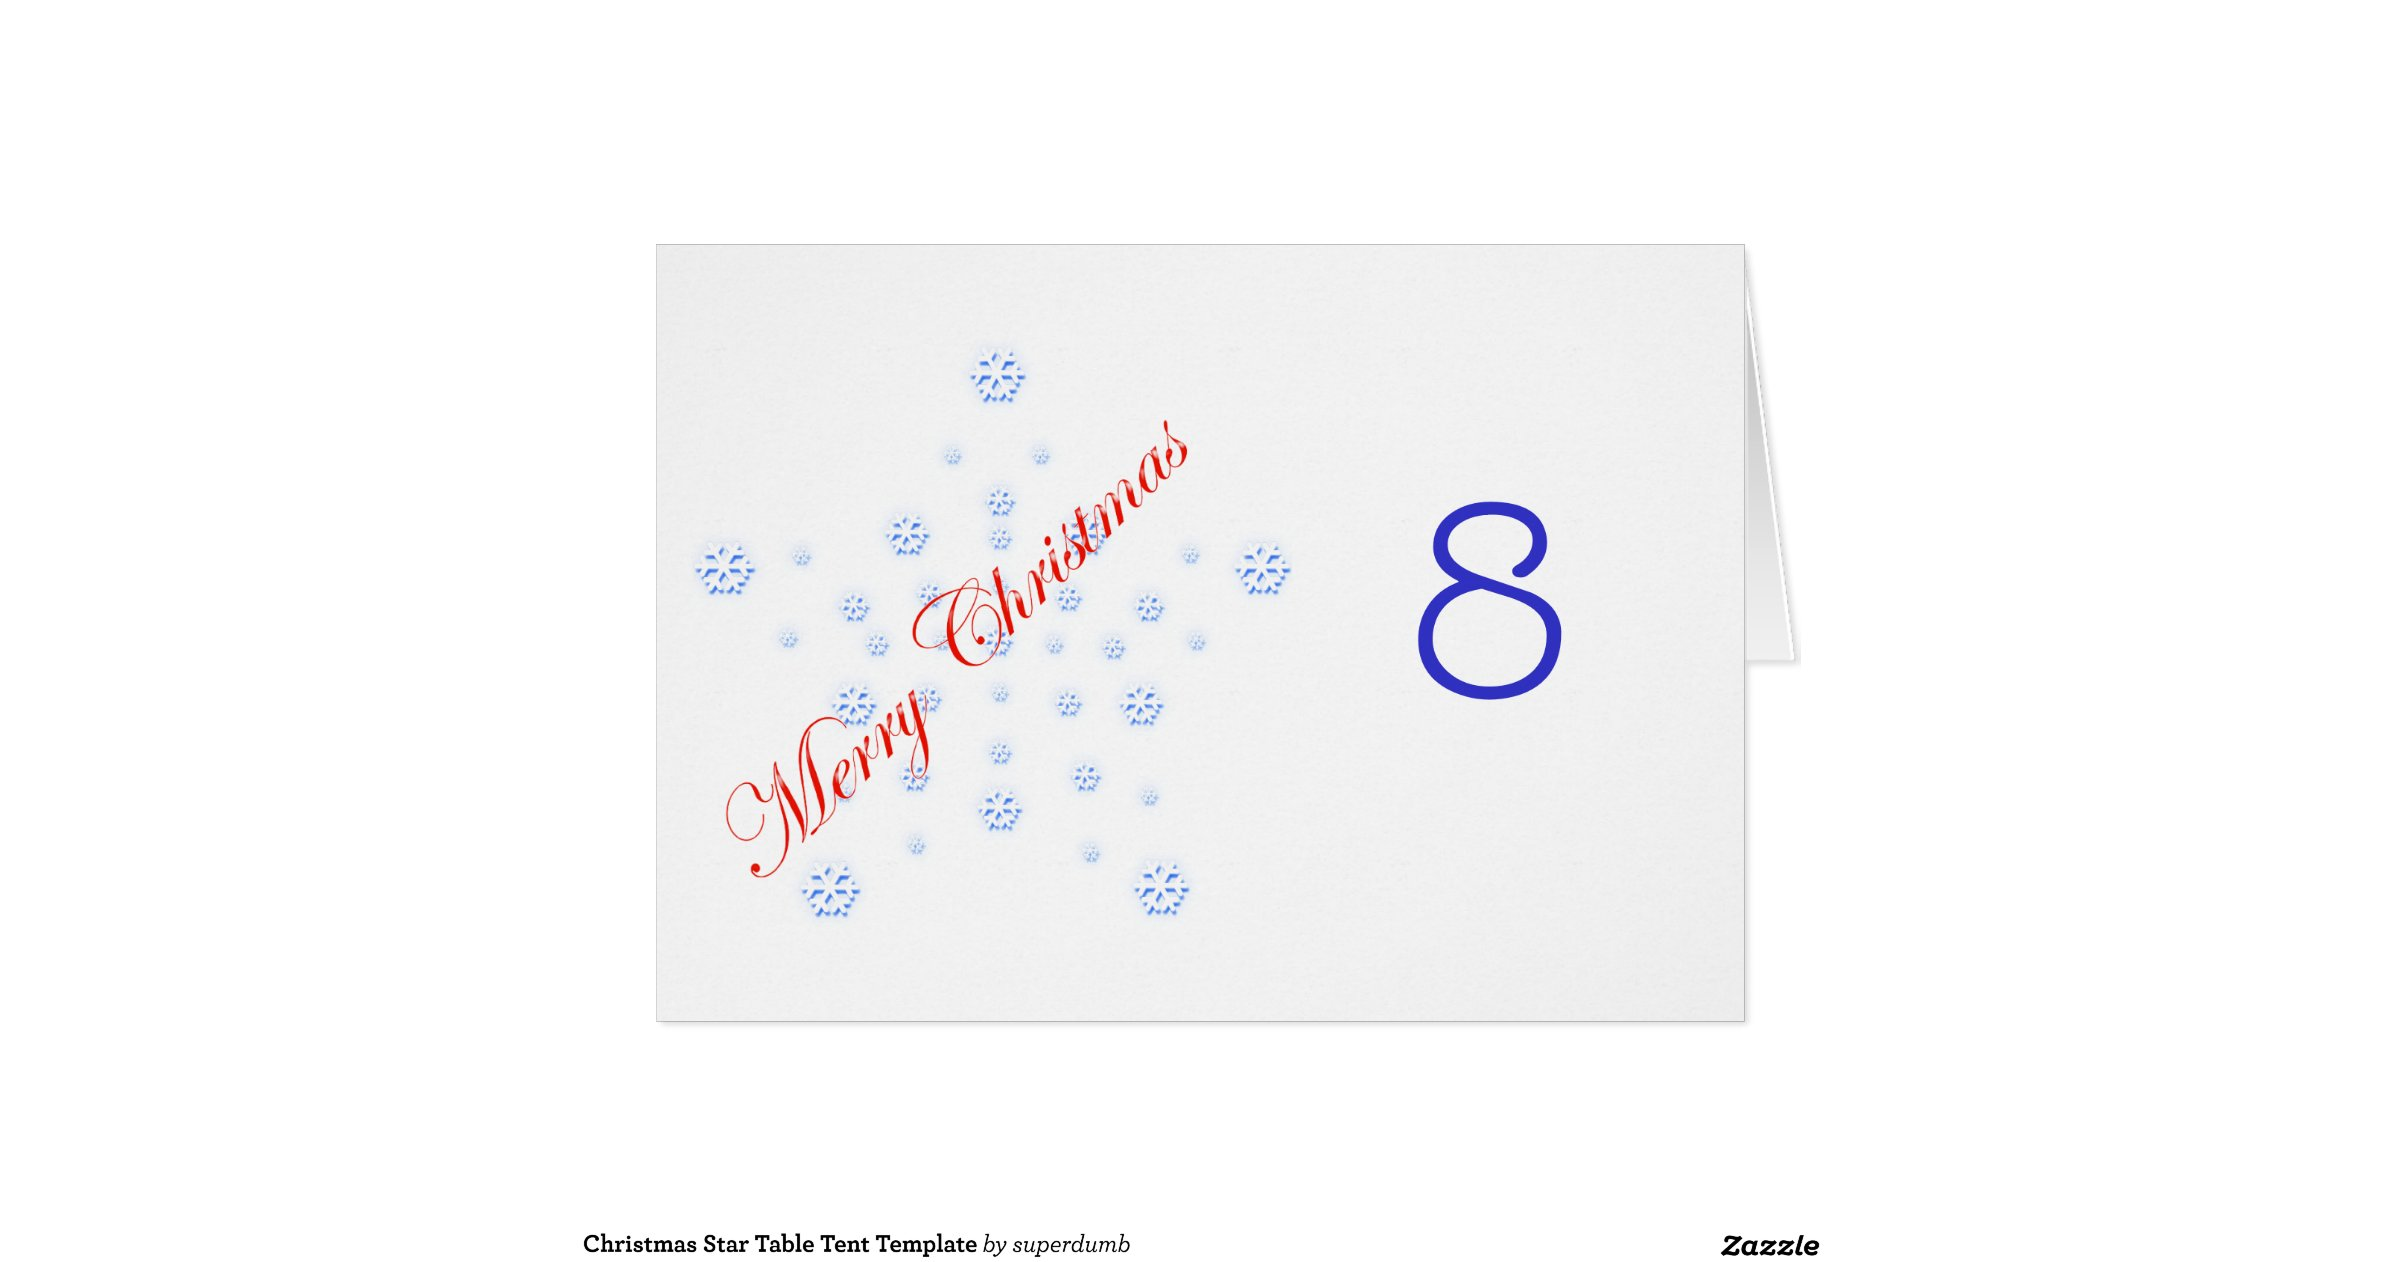 Christmas Star Table Tent Template Stationery Note Card Zazzle s4W427RS